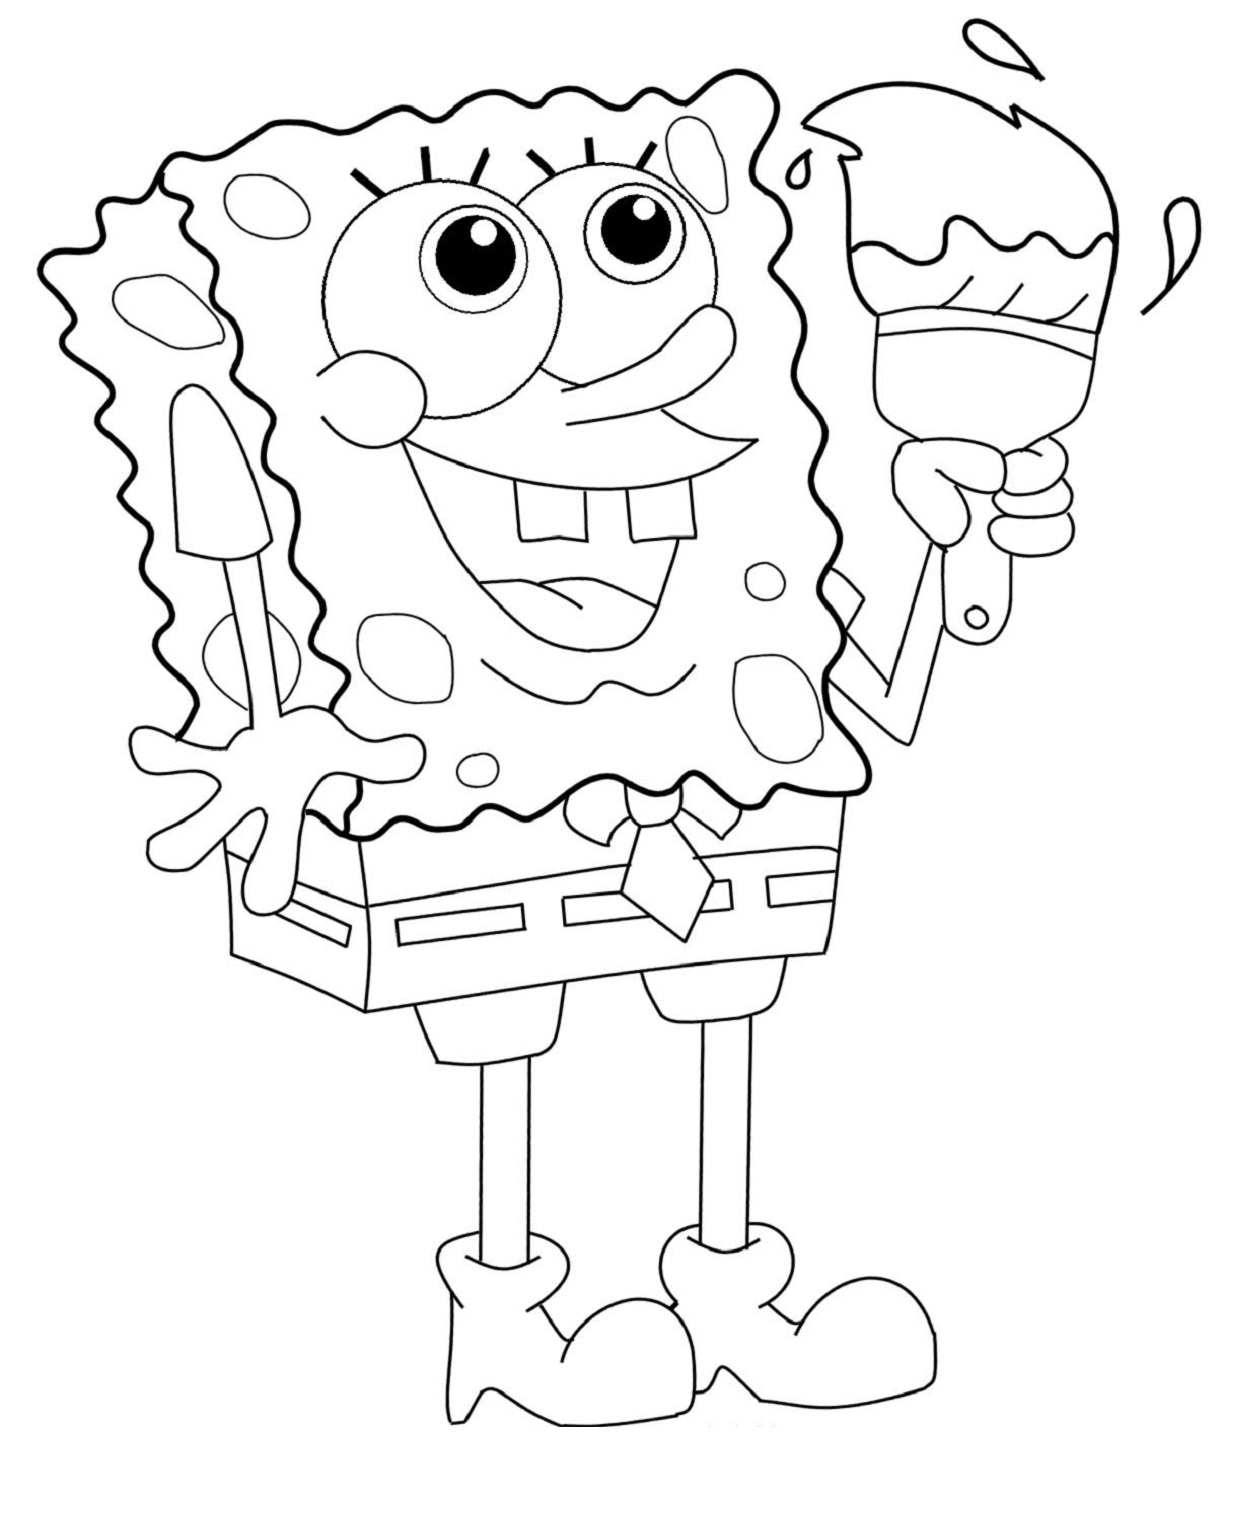 Spongebob Printable Coloring Worksheet